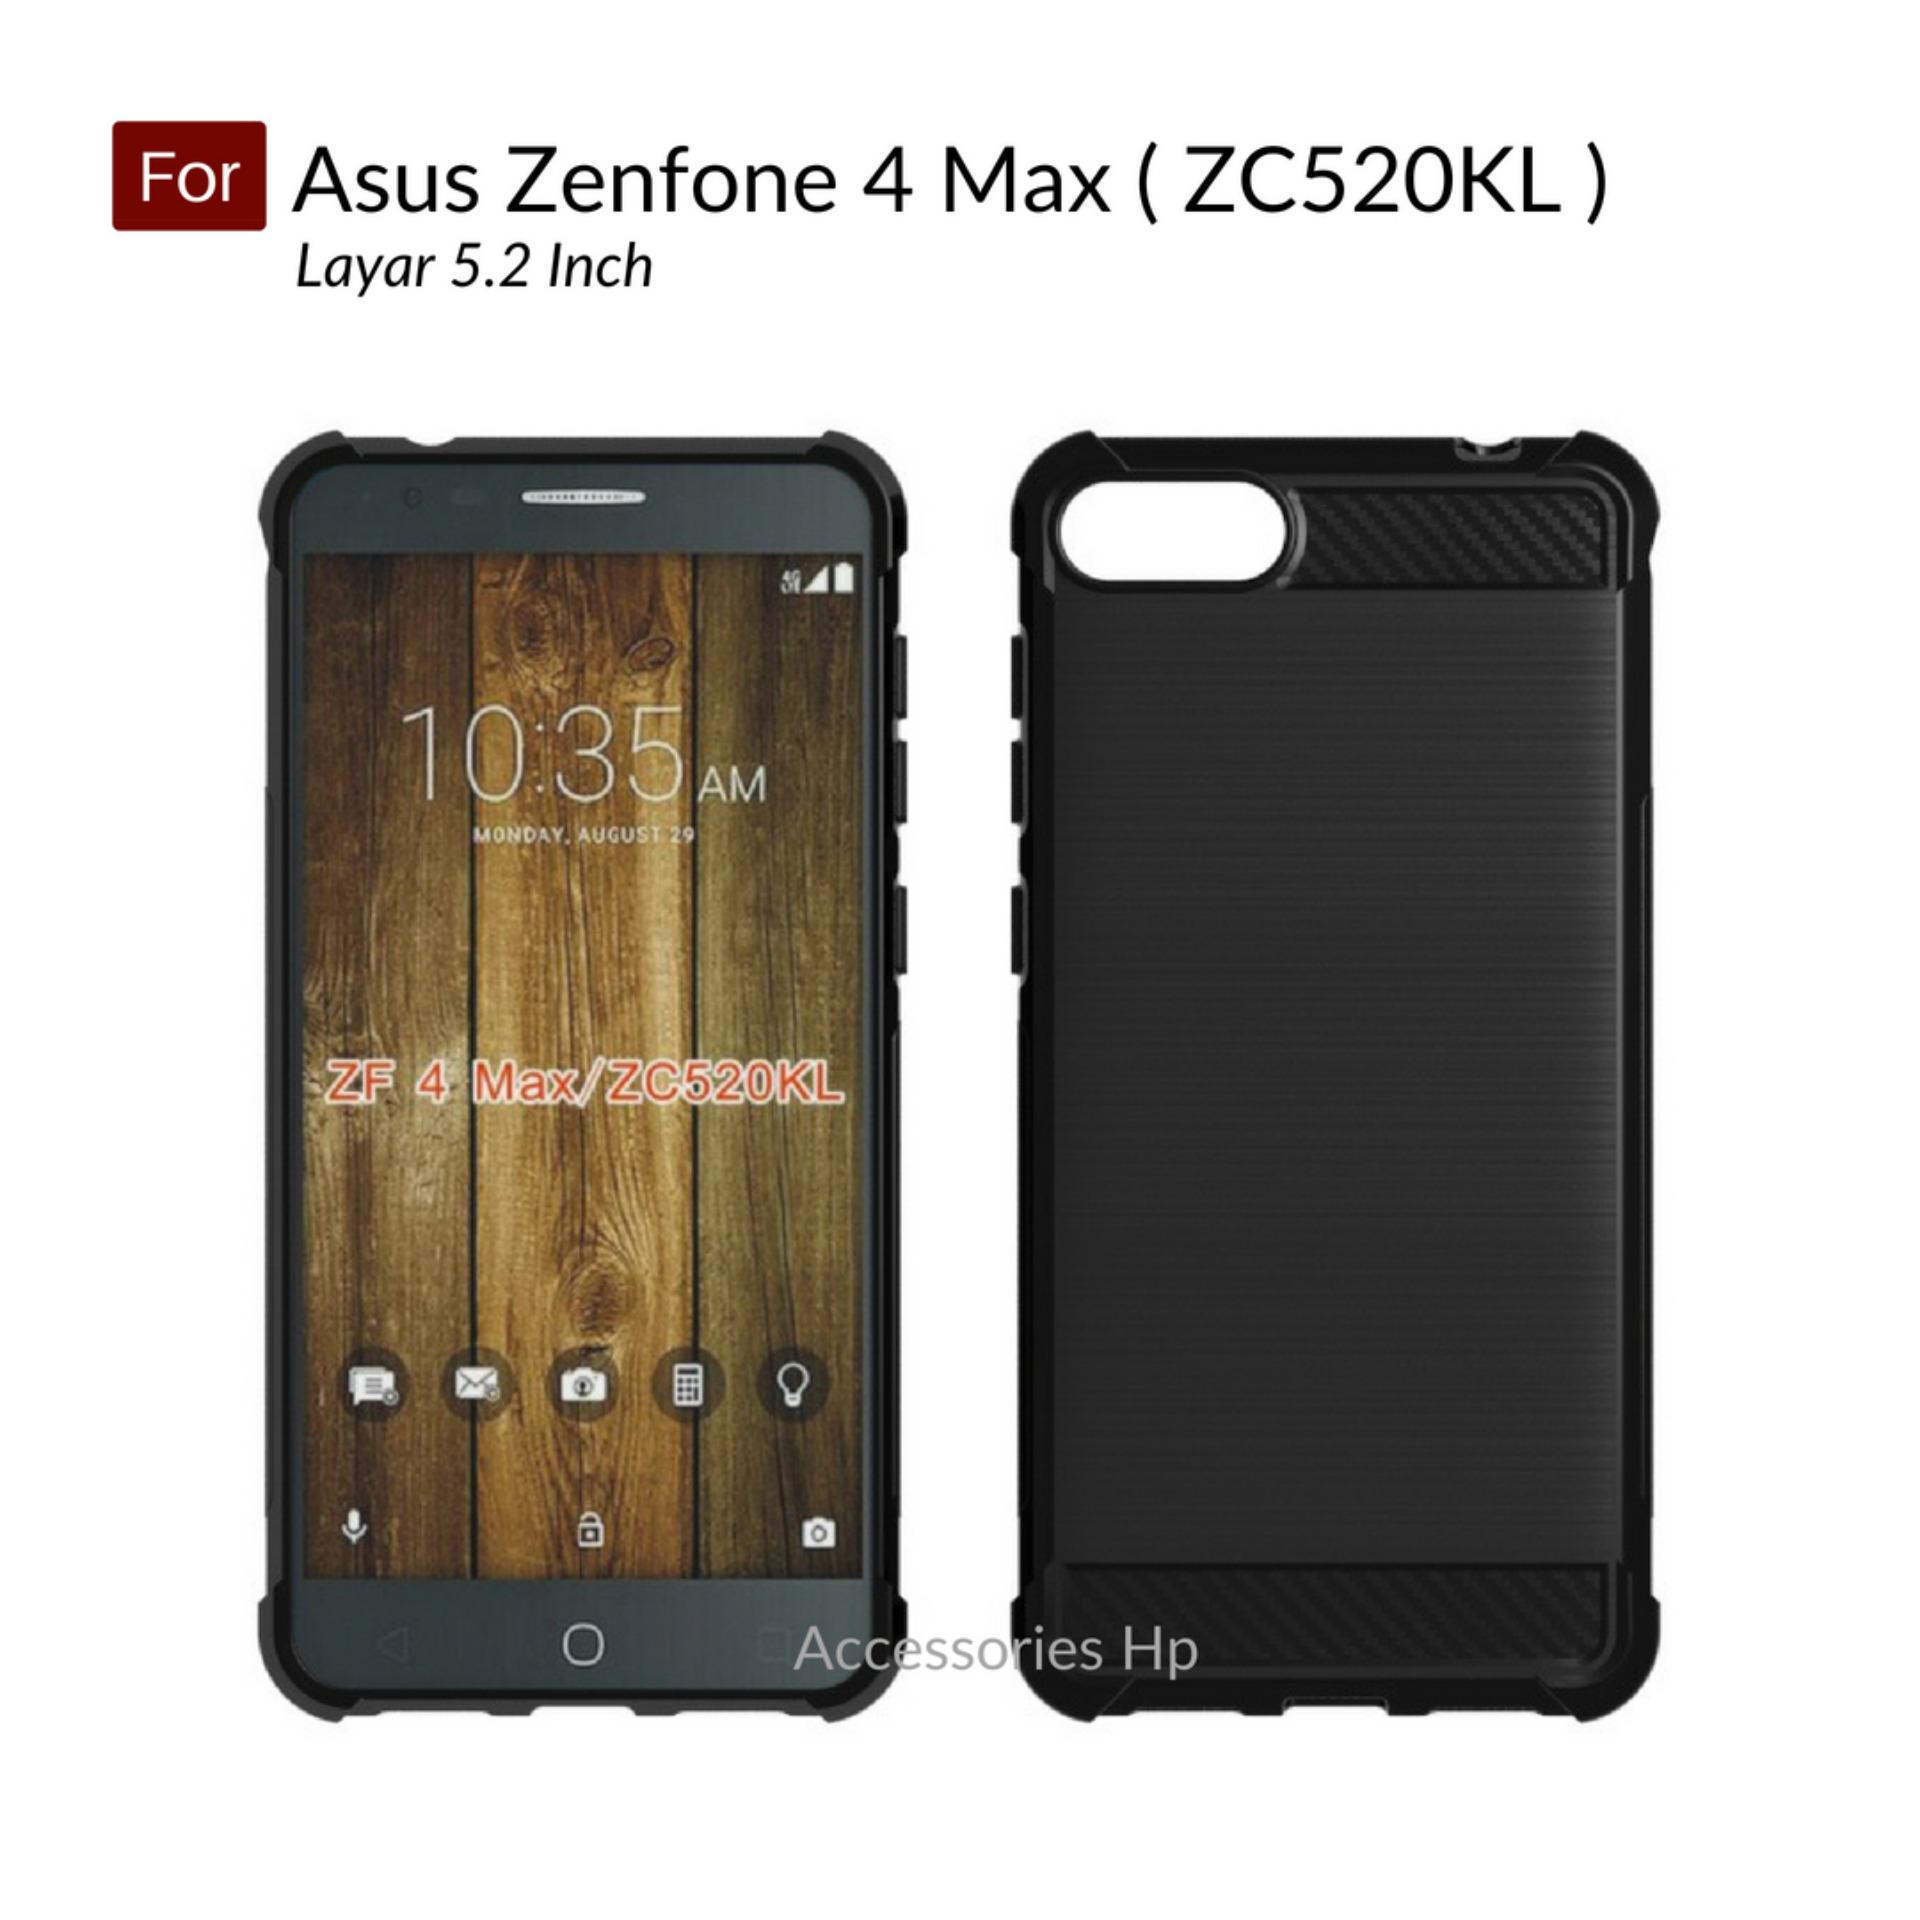 Accessories Hp Brushed Carbon Crack Case Asus Zenfone 4 Max 5.2 inch ( ZC520KL ) -